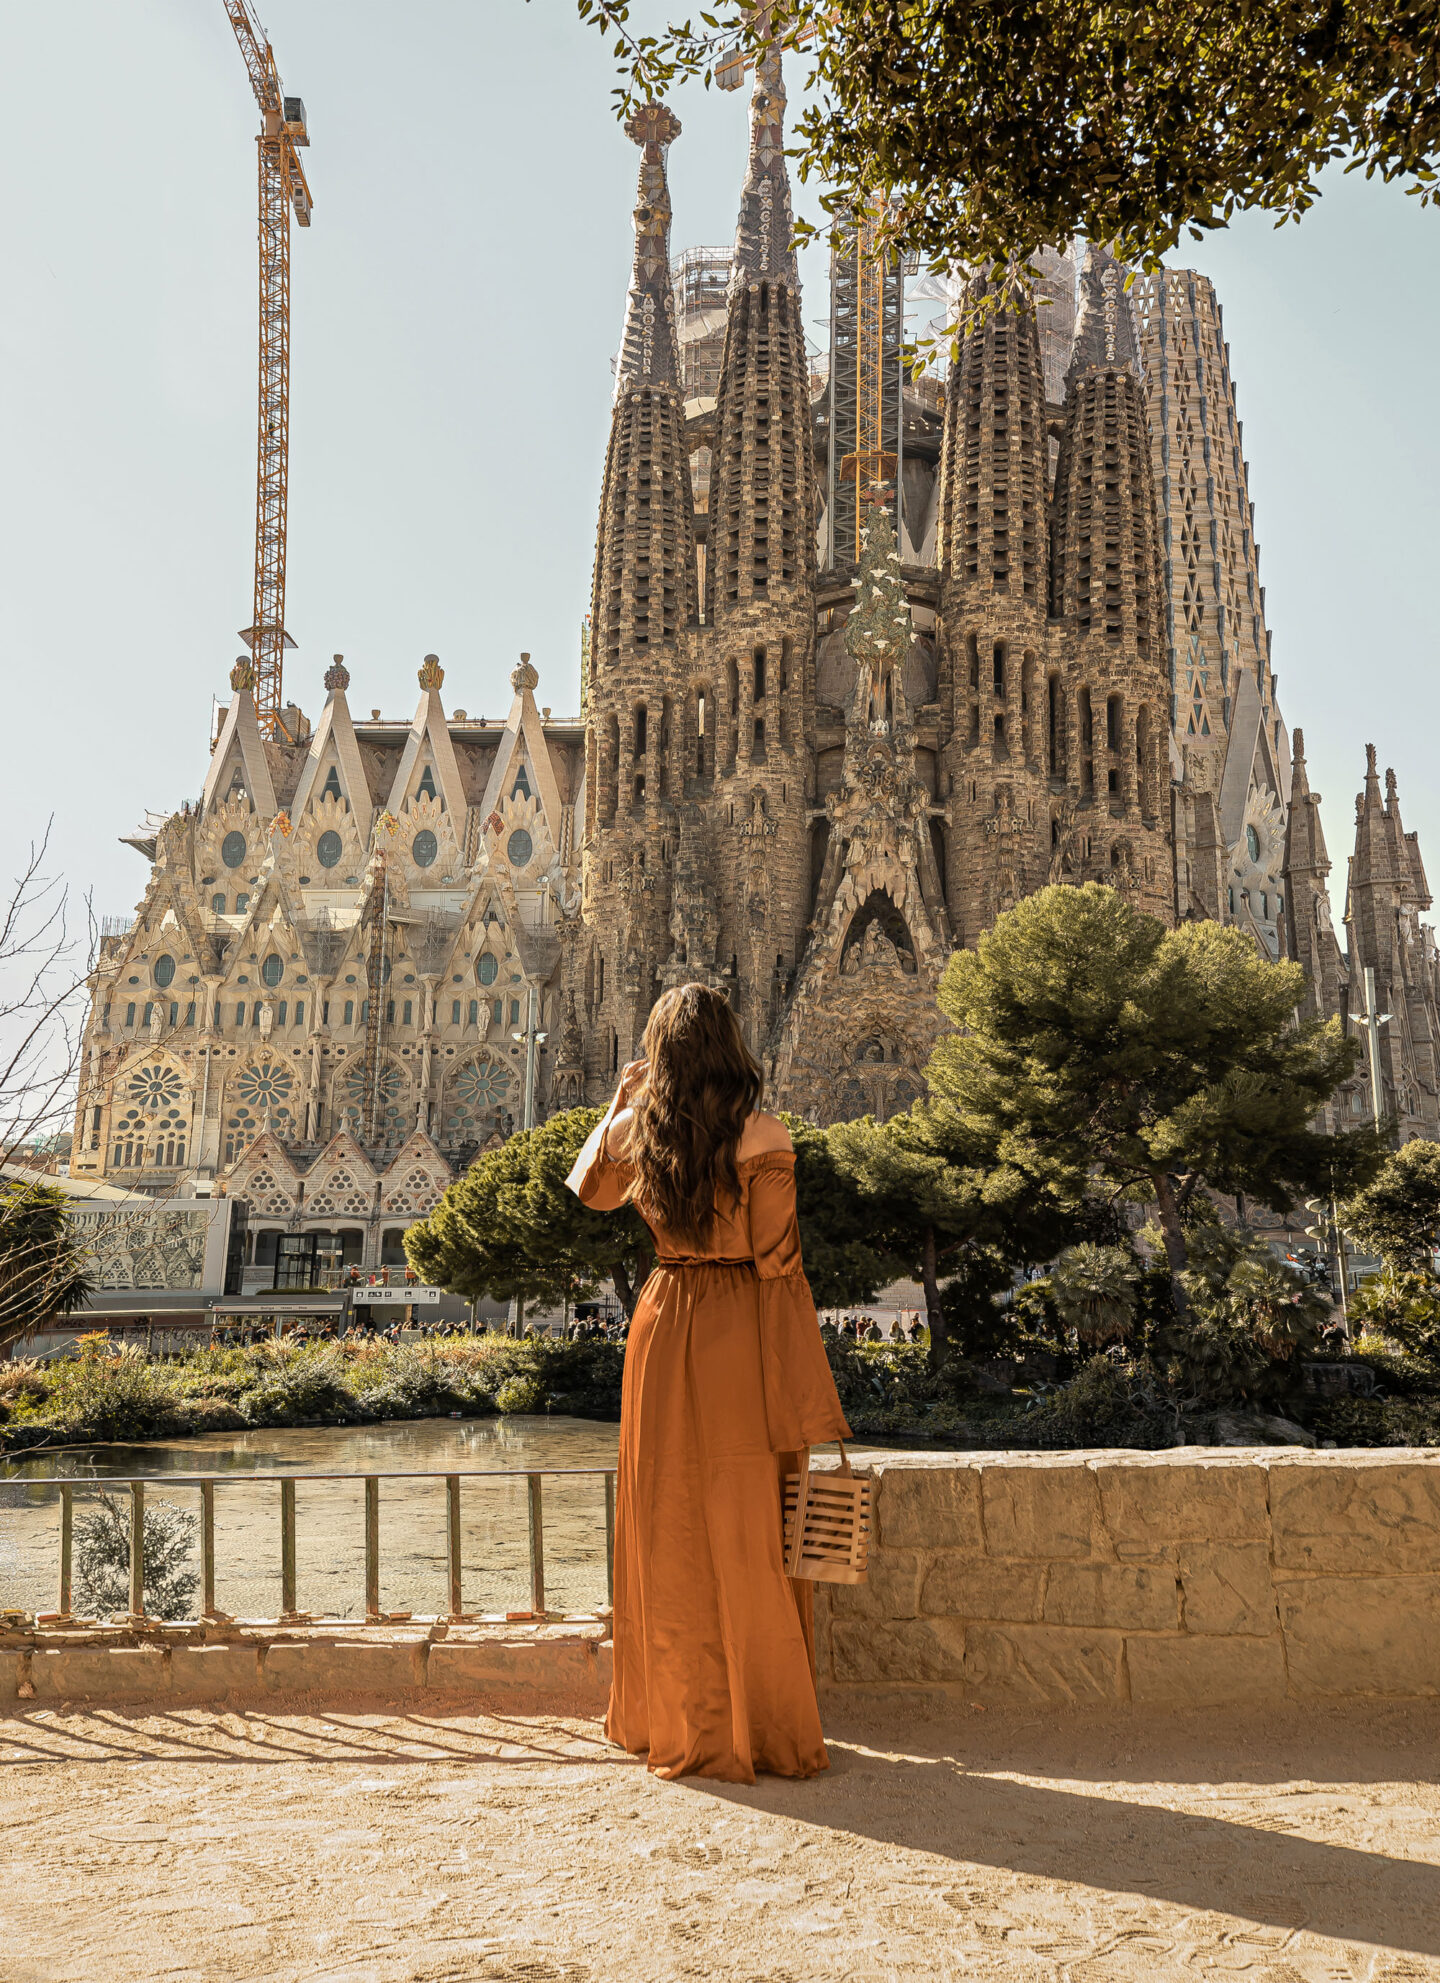 Top-things-to-do-in-Barcelona-Bucket-list-Instagram-Story-Template-kelseyinlondon-Kelsey-Heinrichs-What-to-do-in-Barcelona-Where-to-go-in-Barcelona-top-places-in-Barcelona-la-sagrada-familia